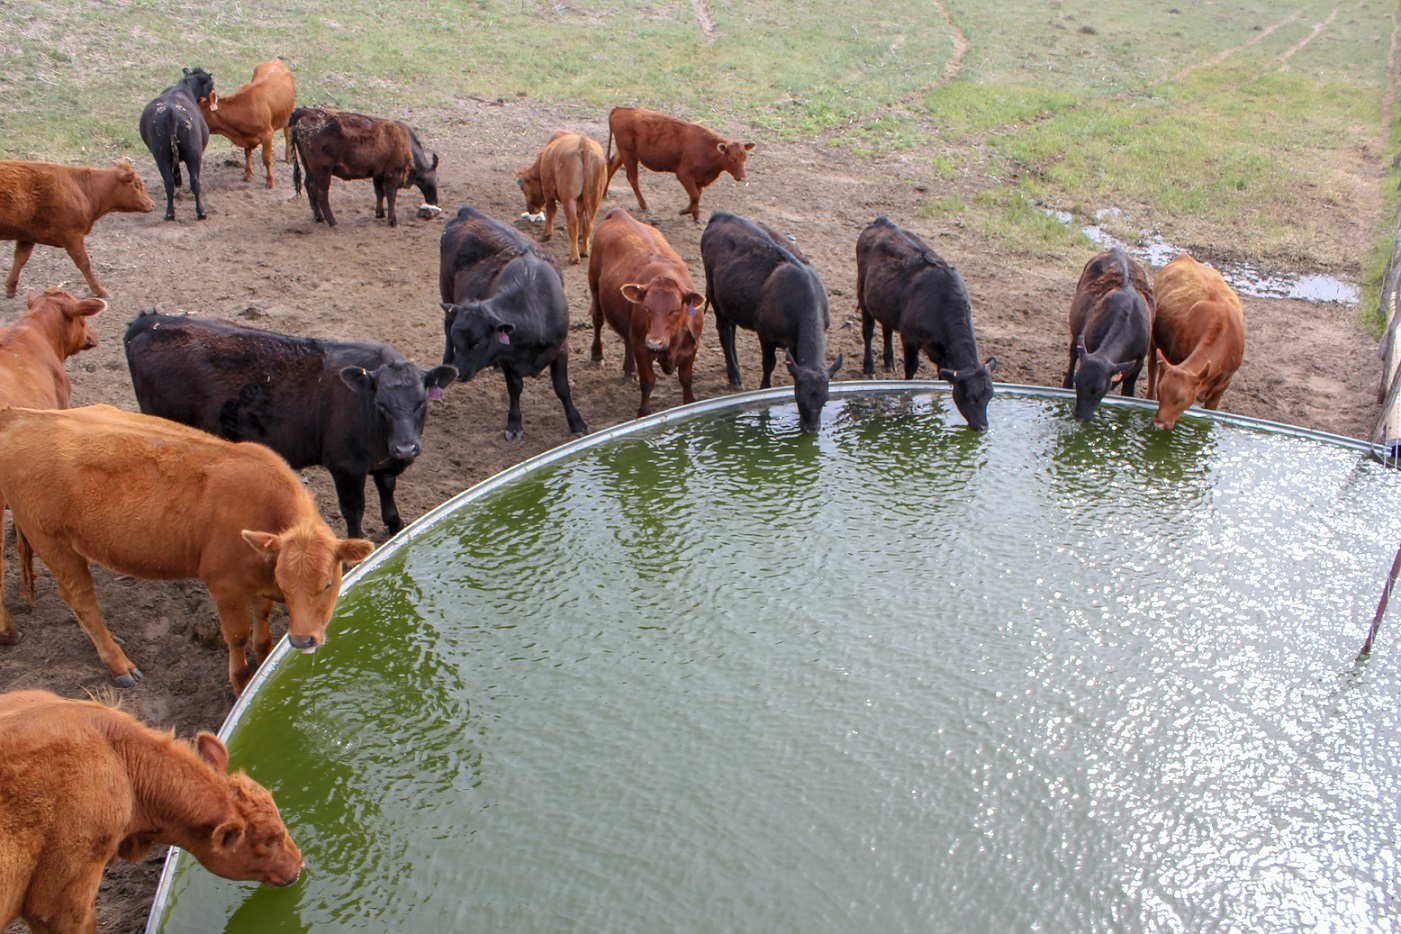 cattle drinking from a water tank